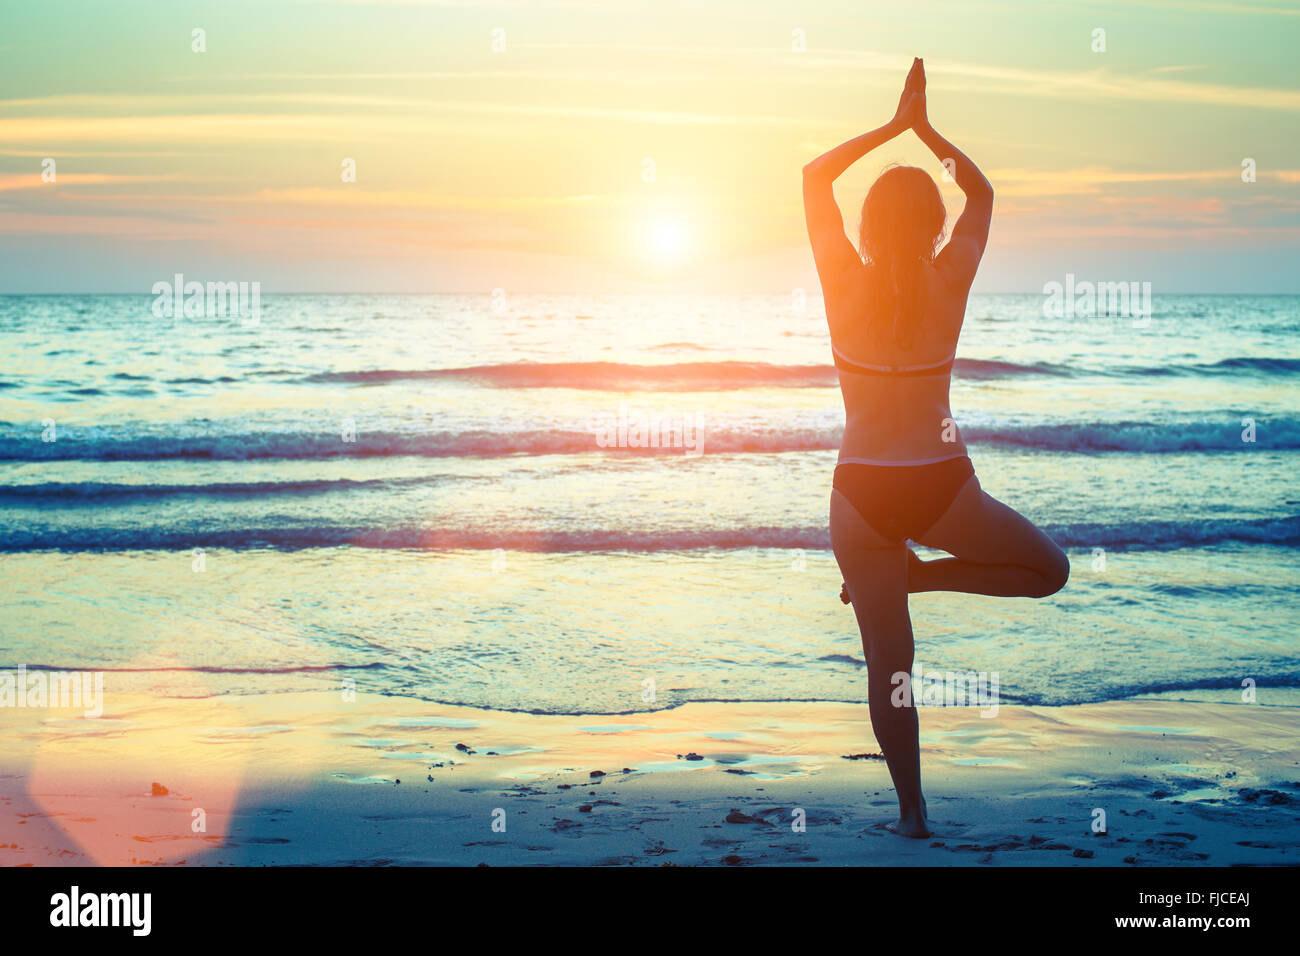 Silhouette of woman practicing yoga on the beach at sunset. - Stock Image